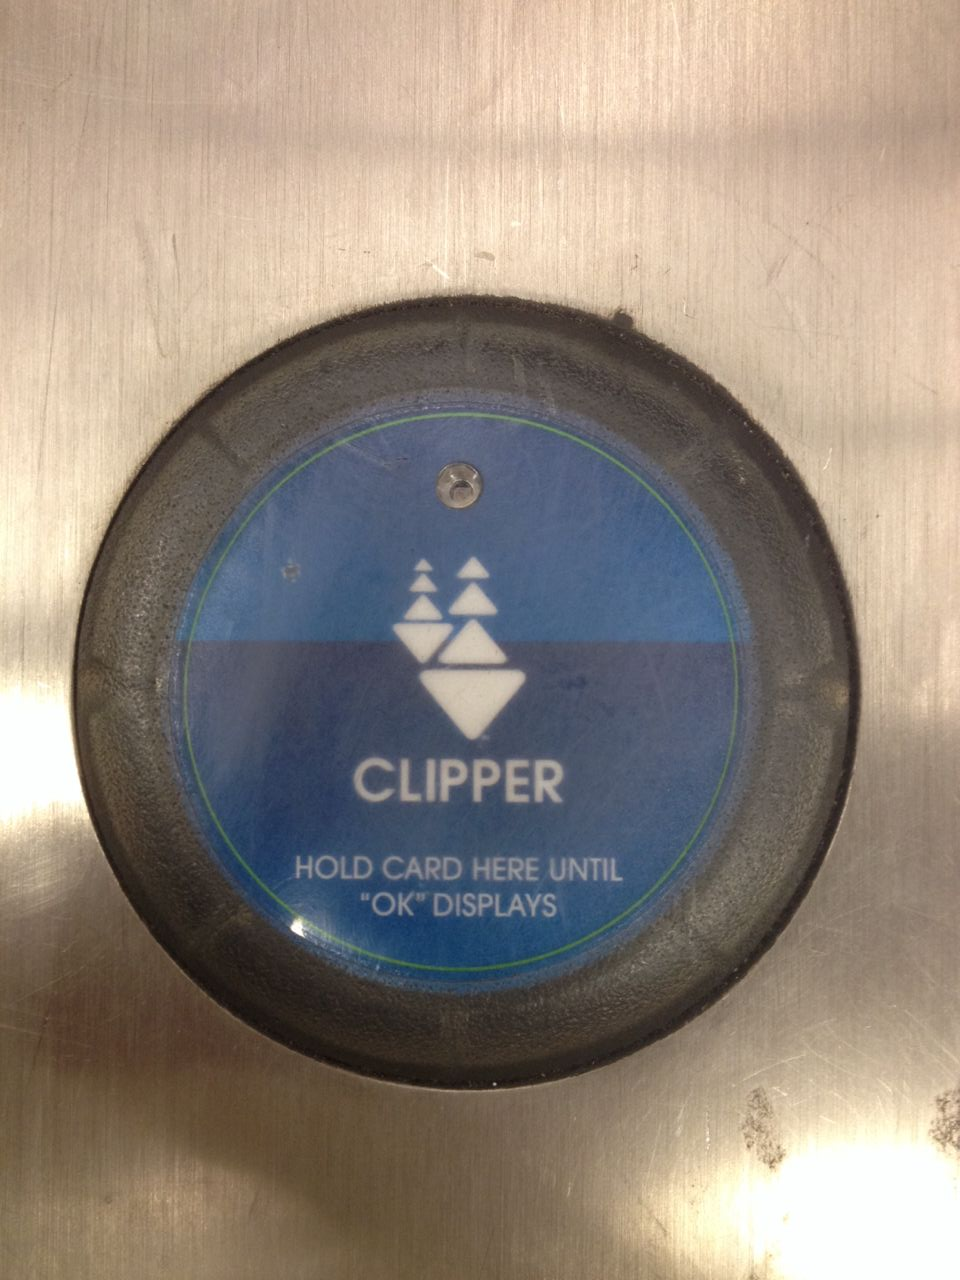 The Clipper card system.